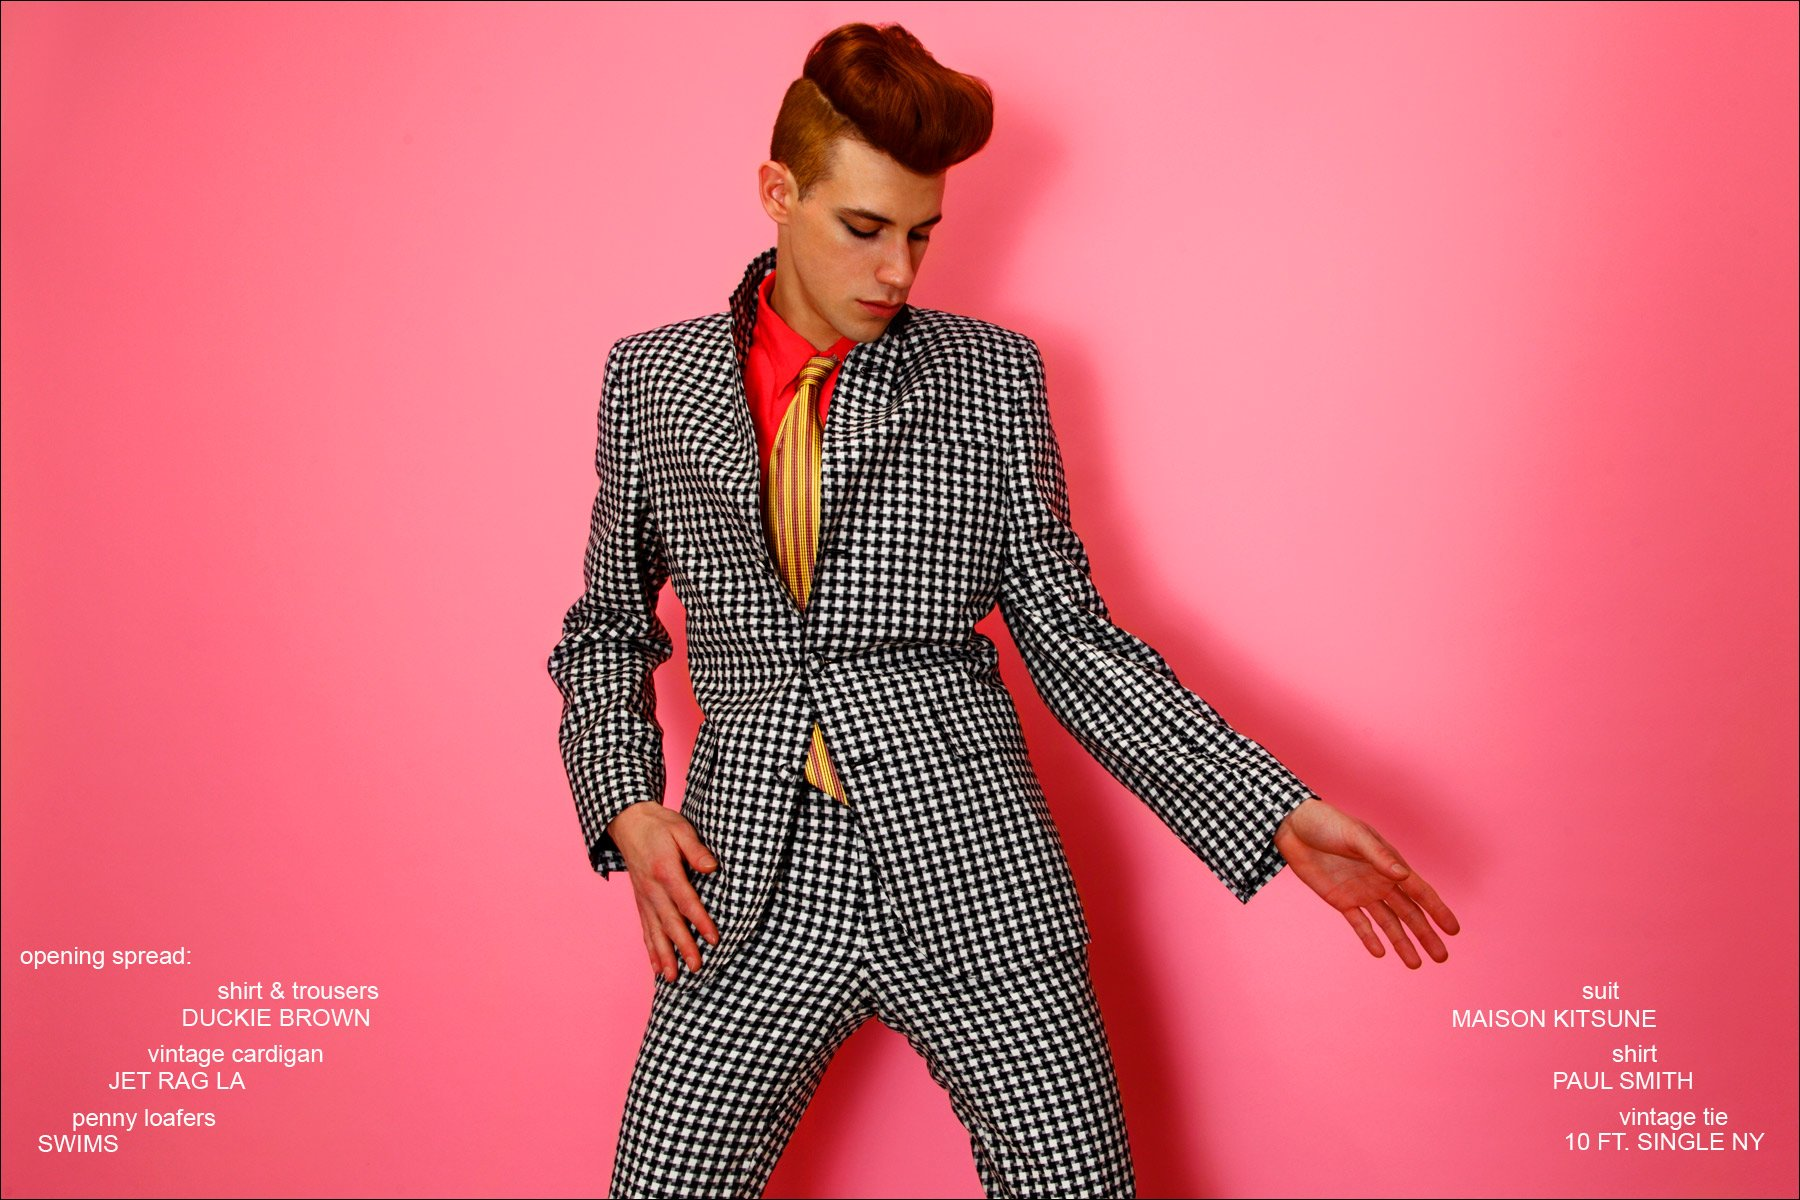 Model Lyle Lodwick wears a houndstooth suit by Maison Kitsune. Photographed by Alexander Thompson for Ponyboy magazine NY.